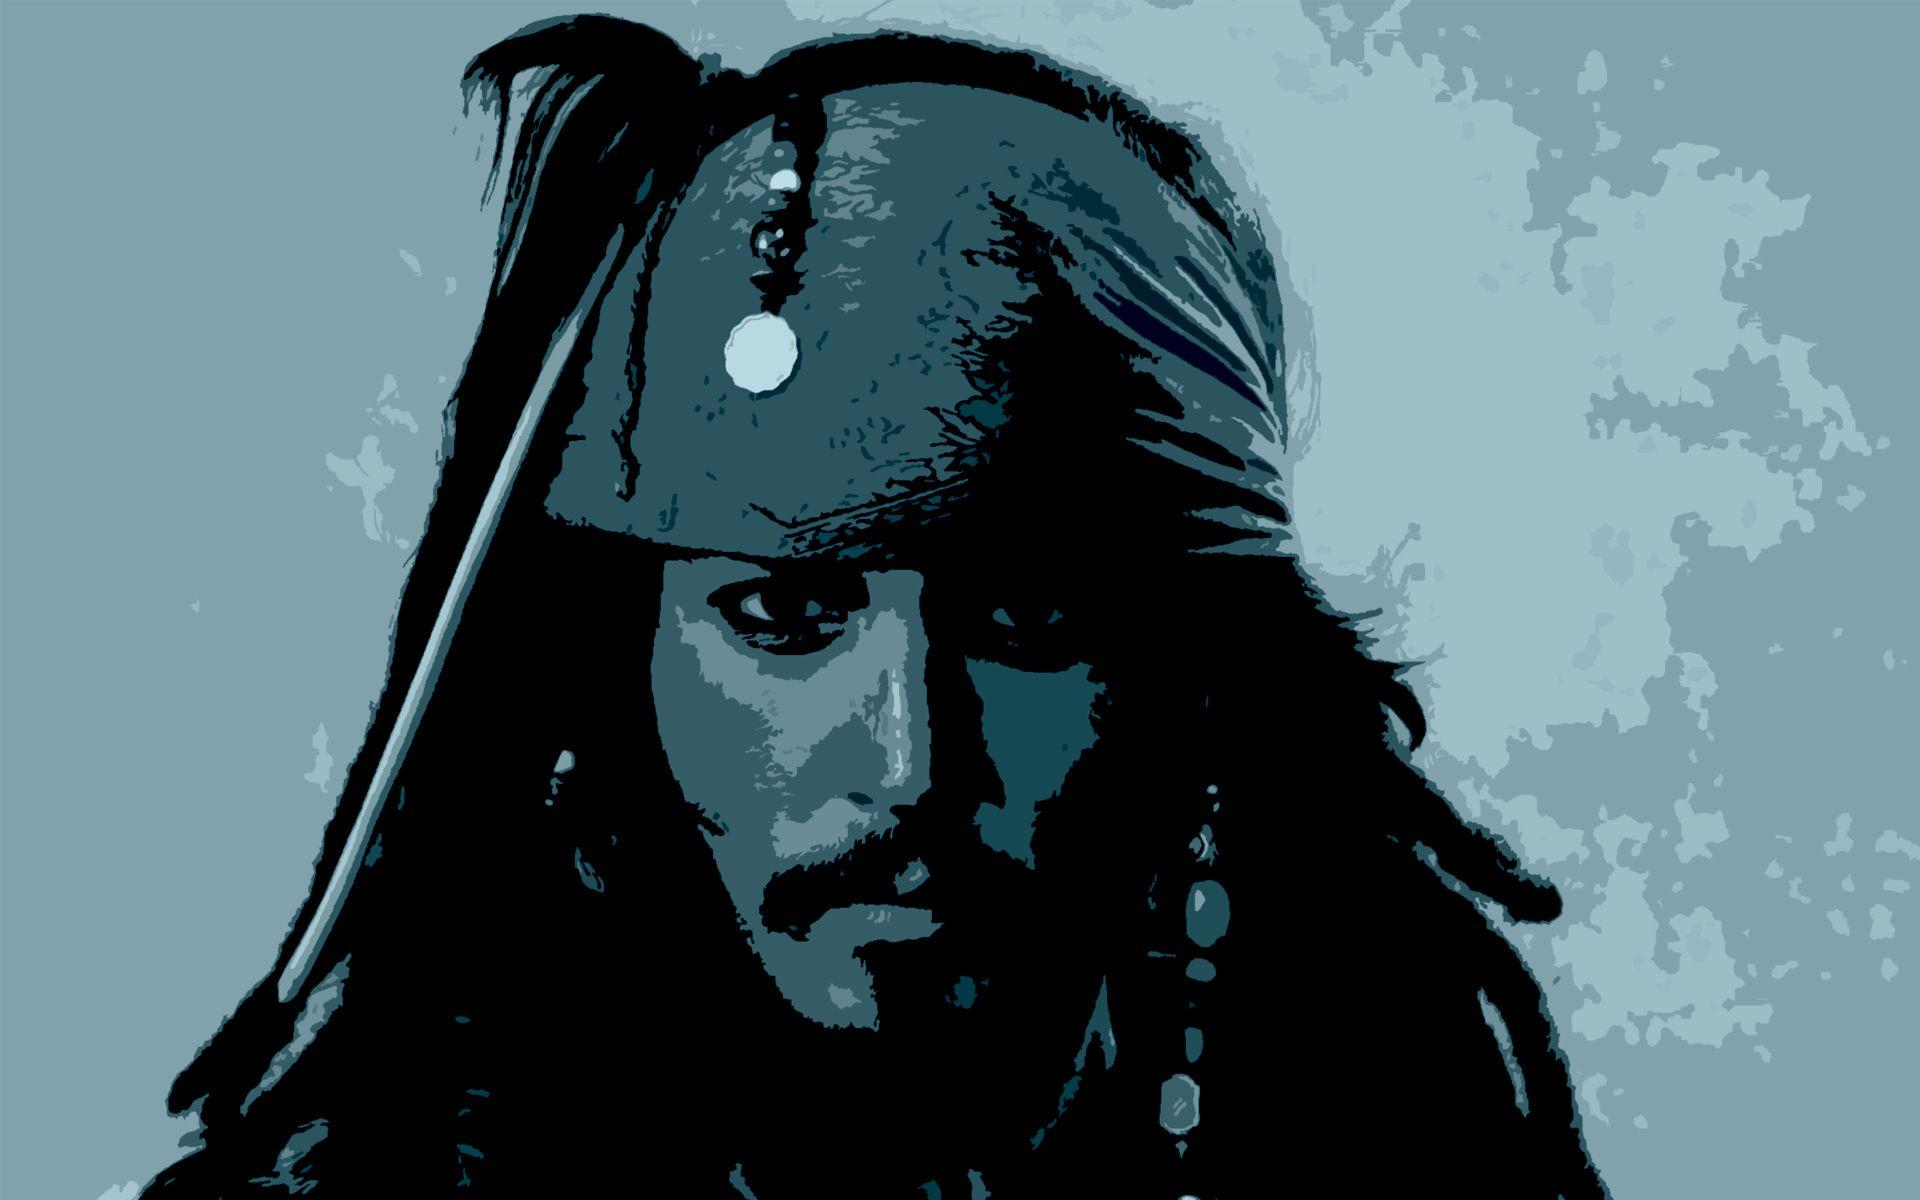 Jack Sparrow Pop Art Wallpaper by HD Wallpapers Daily